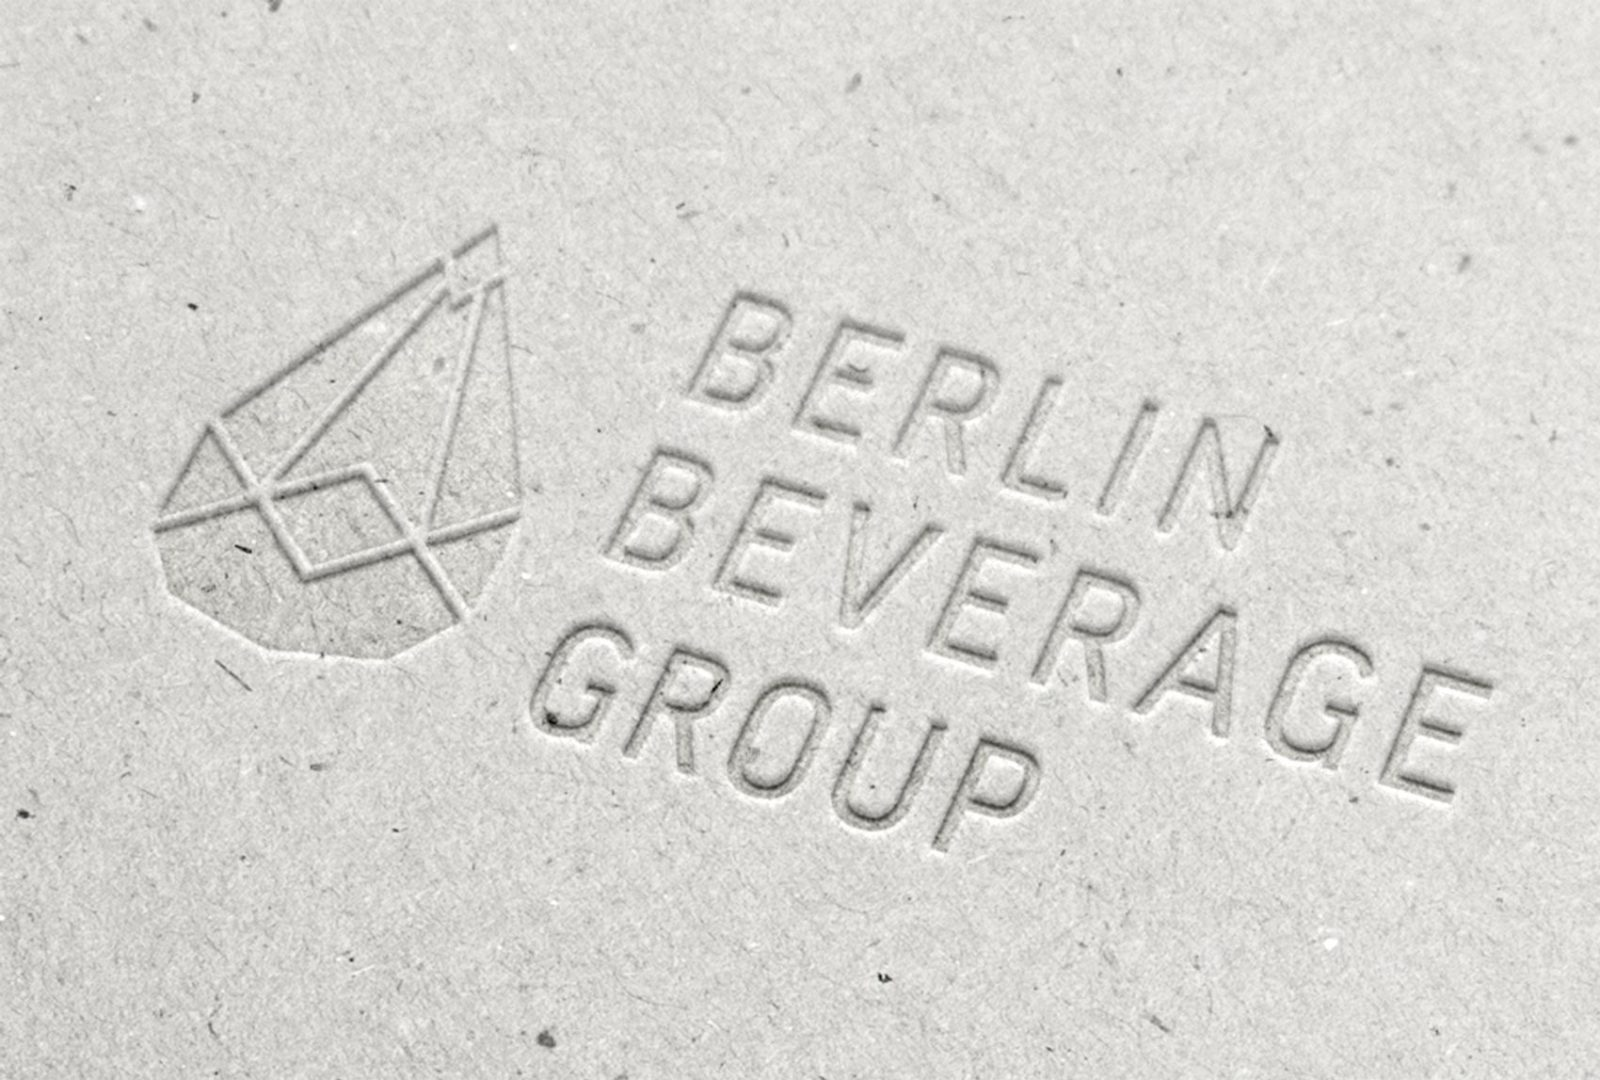 Logodesign, Corporate Design, Berlin Beverage Group